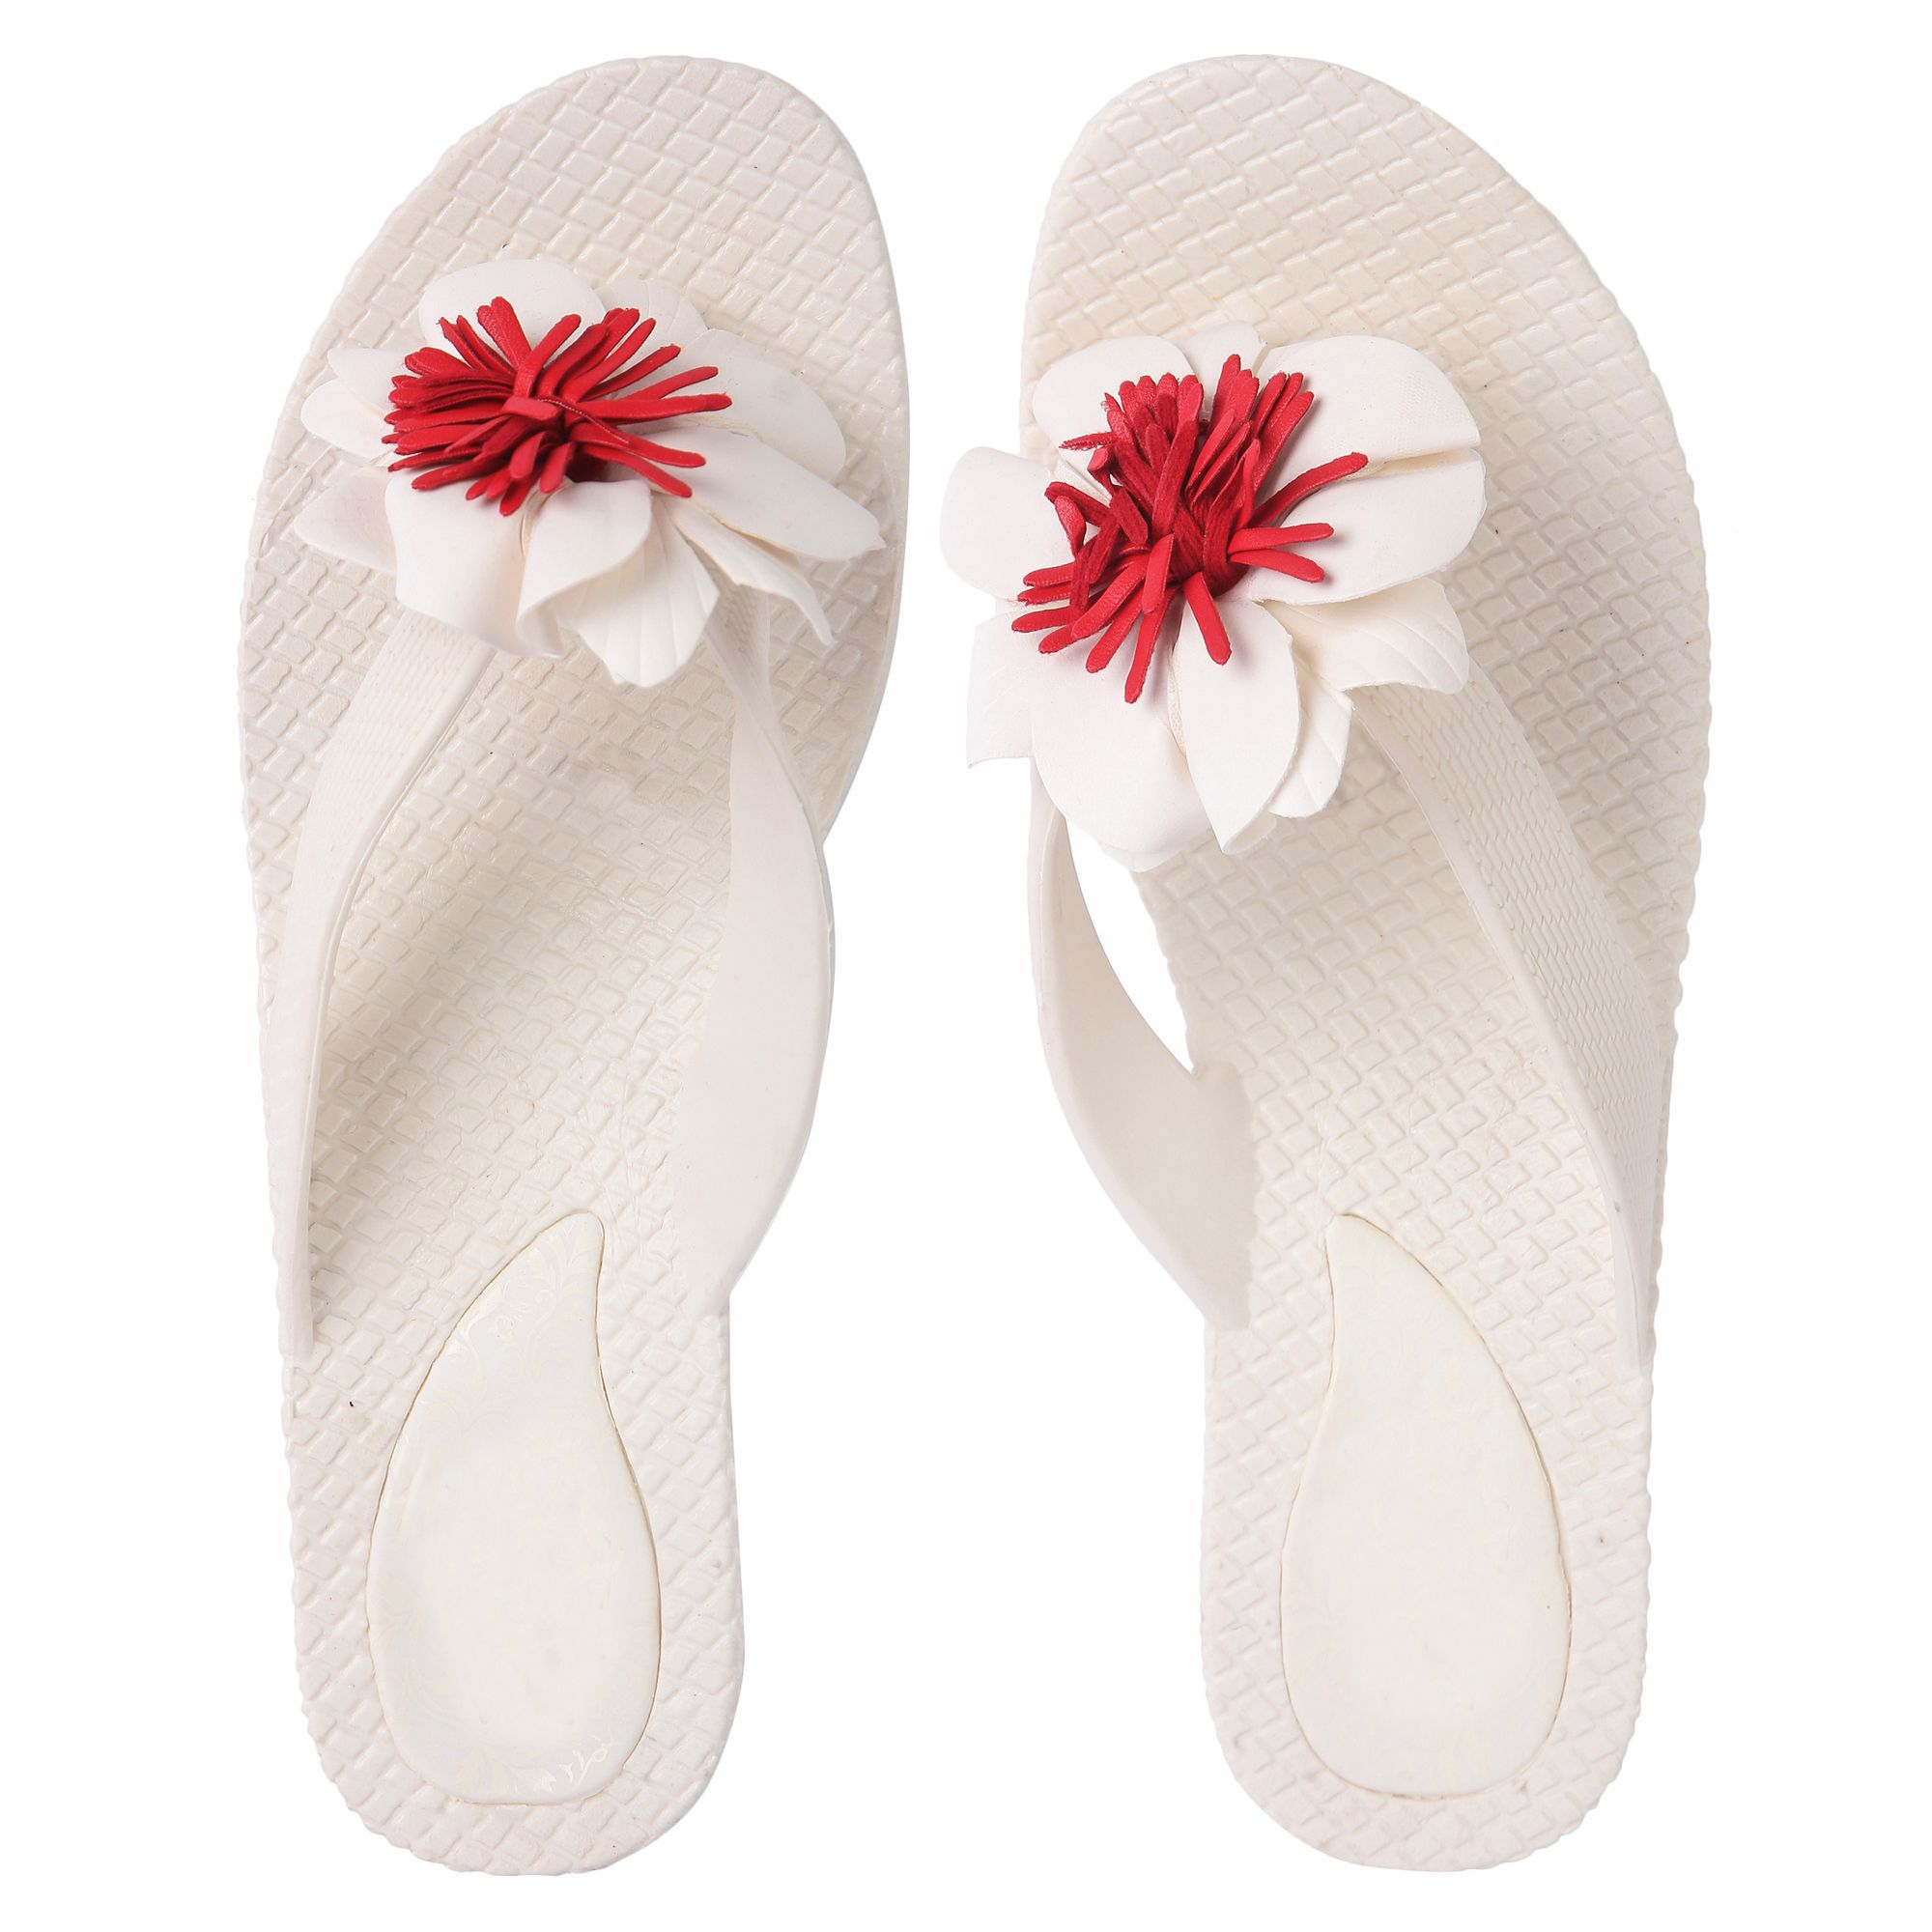 42a0cec8eaad Czar White Slippers Price in India- Buy Czar White Slippers Online at  Snapdeal